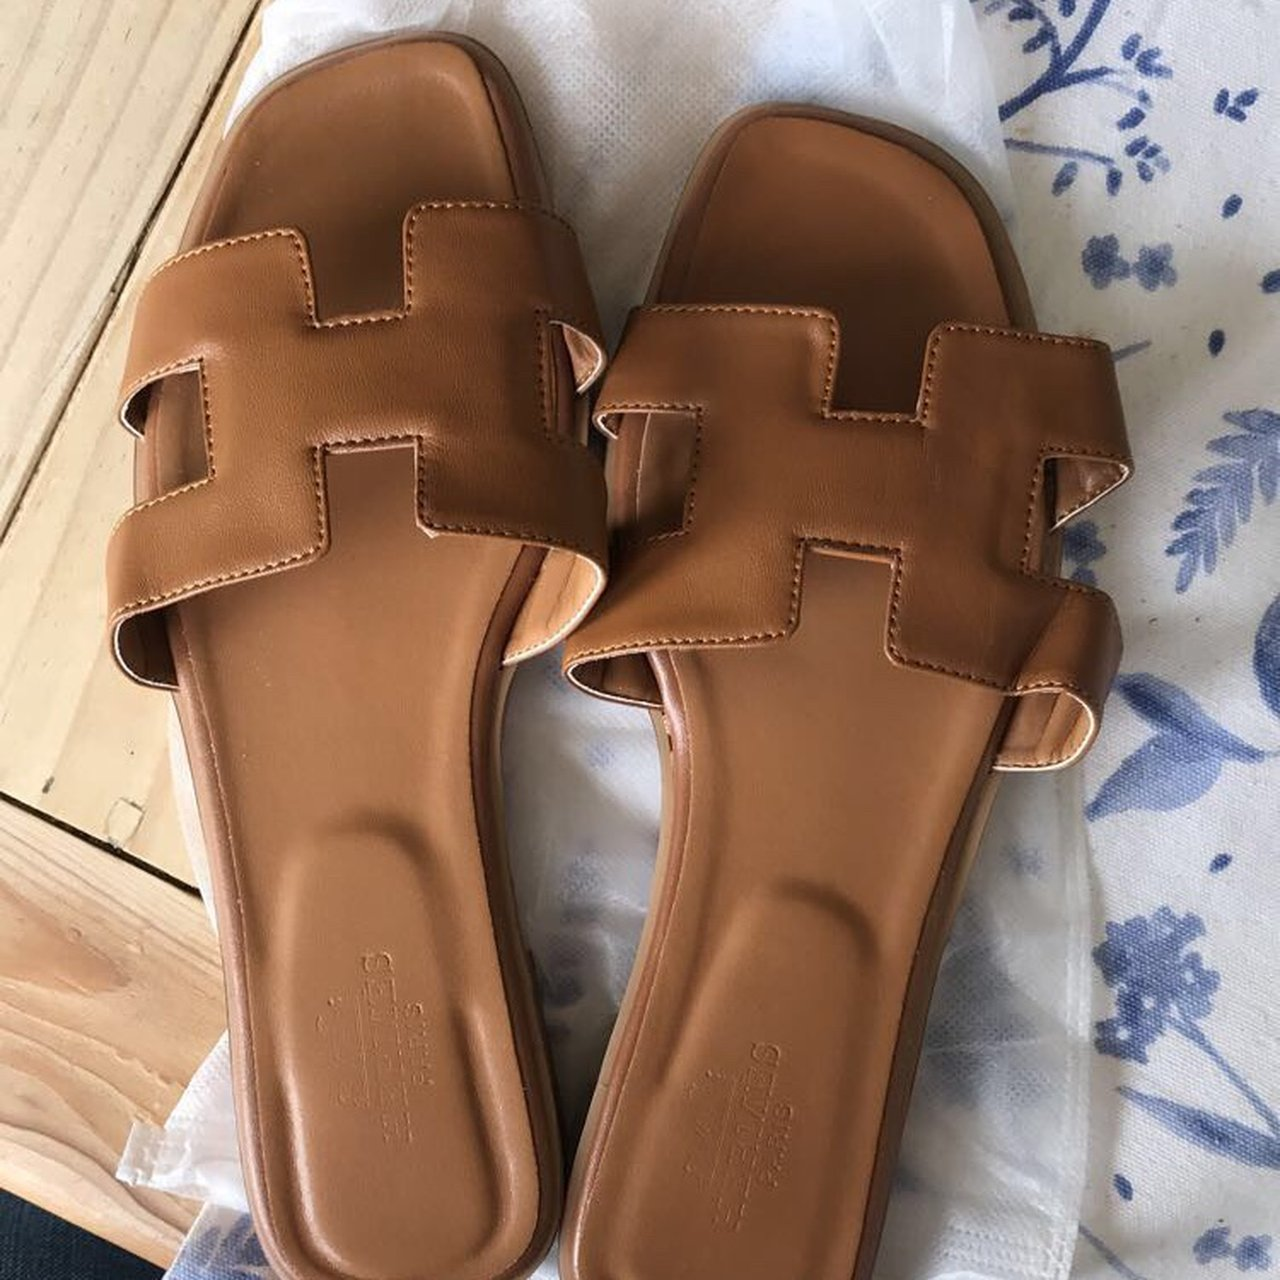 668a34db116 Hermes brown leather sandals size 6. Brand new never worn. x - Depop